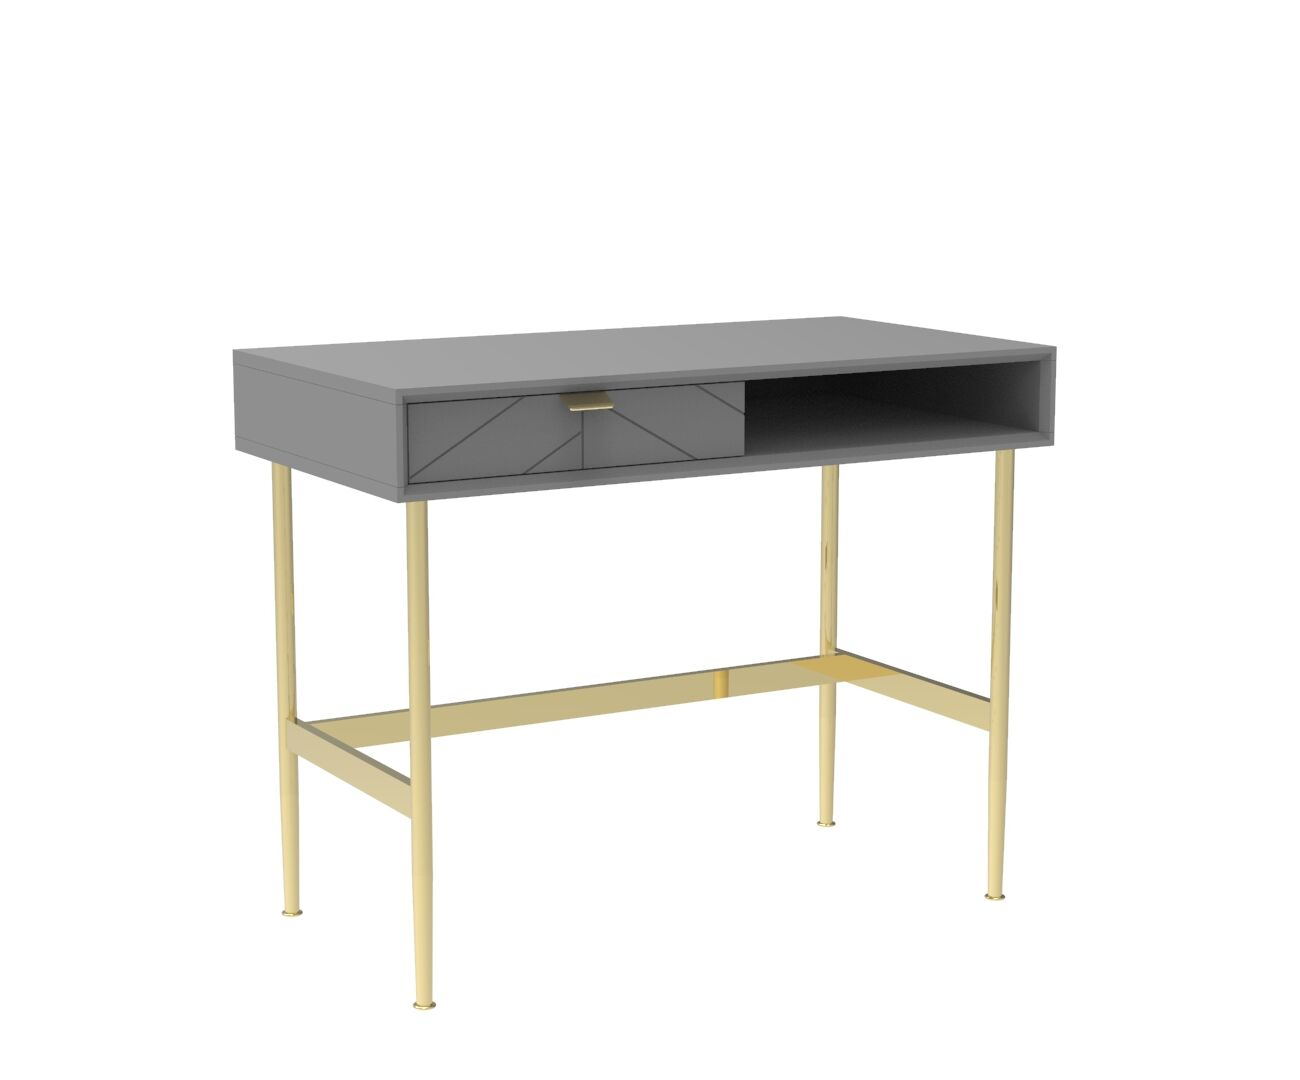 Chevron-patterned Adele Compact Desk in Mist Grey and Brass